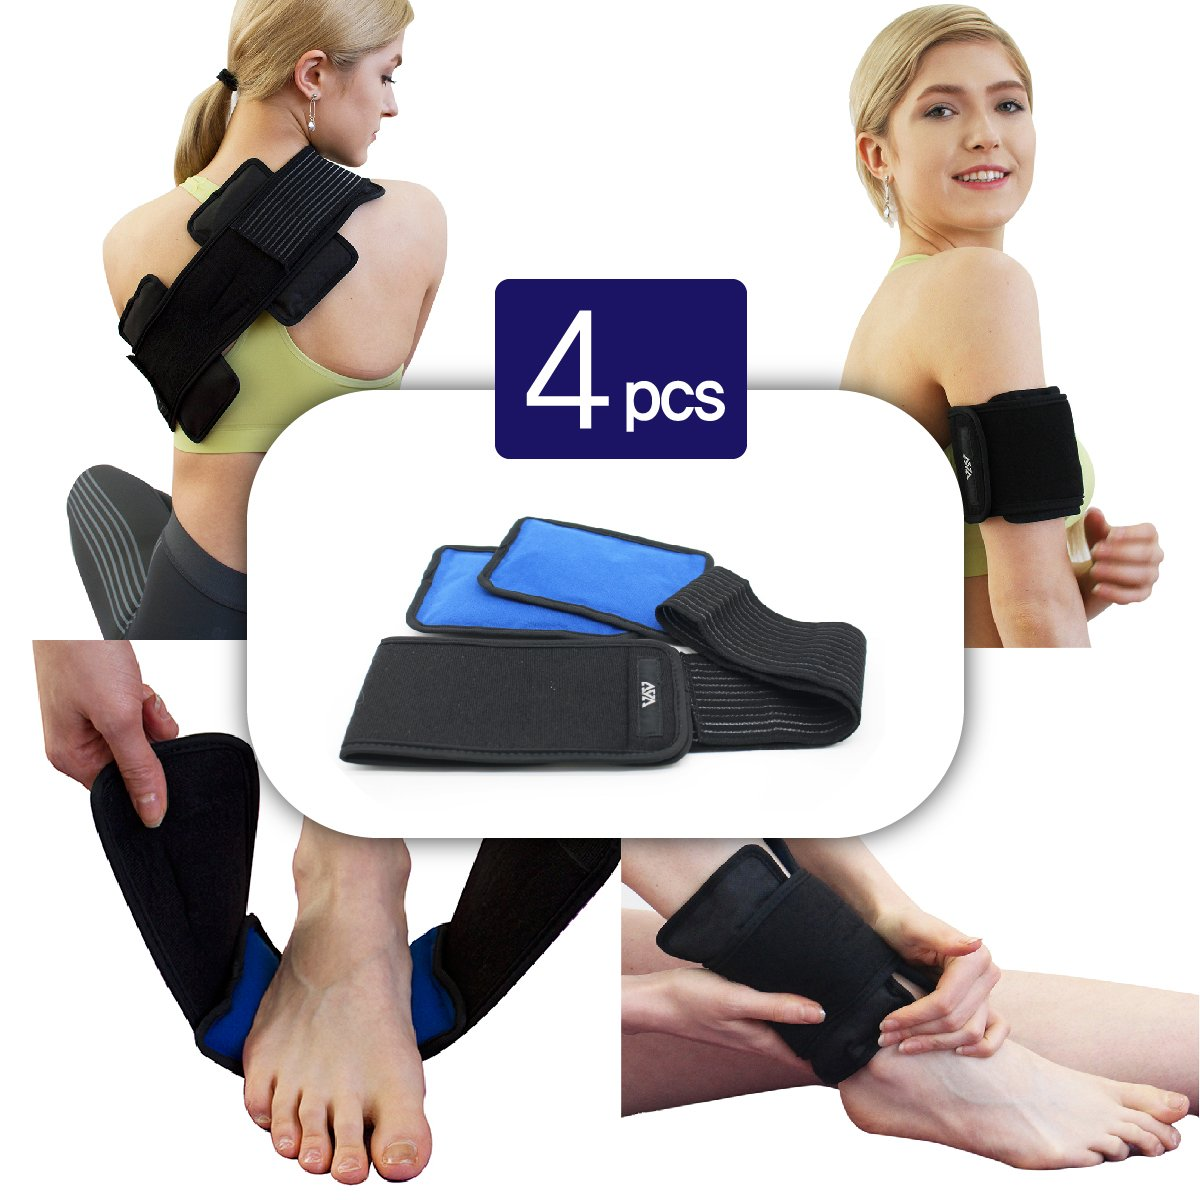 Alligne Reusable Hot&Cold Gel packs(4 PCS) with Adjustable Compress Wrap for Pain Relief(hand, foot, wrist, elbow, waist, shoulder, etc) Ideal for sports injuries, muscle pains, body aches and more!